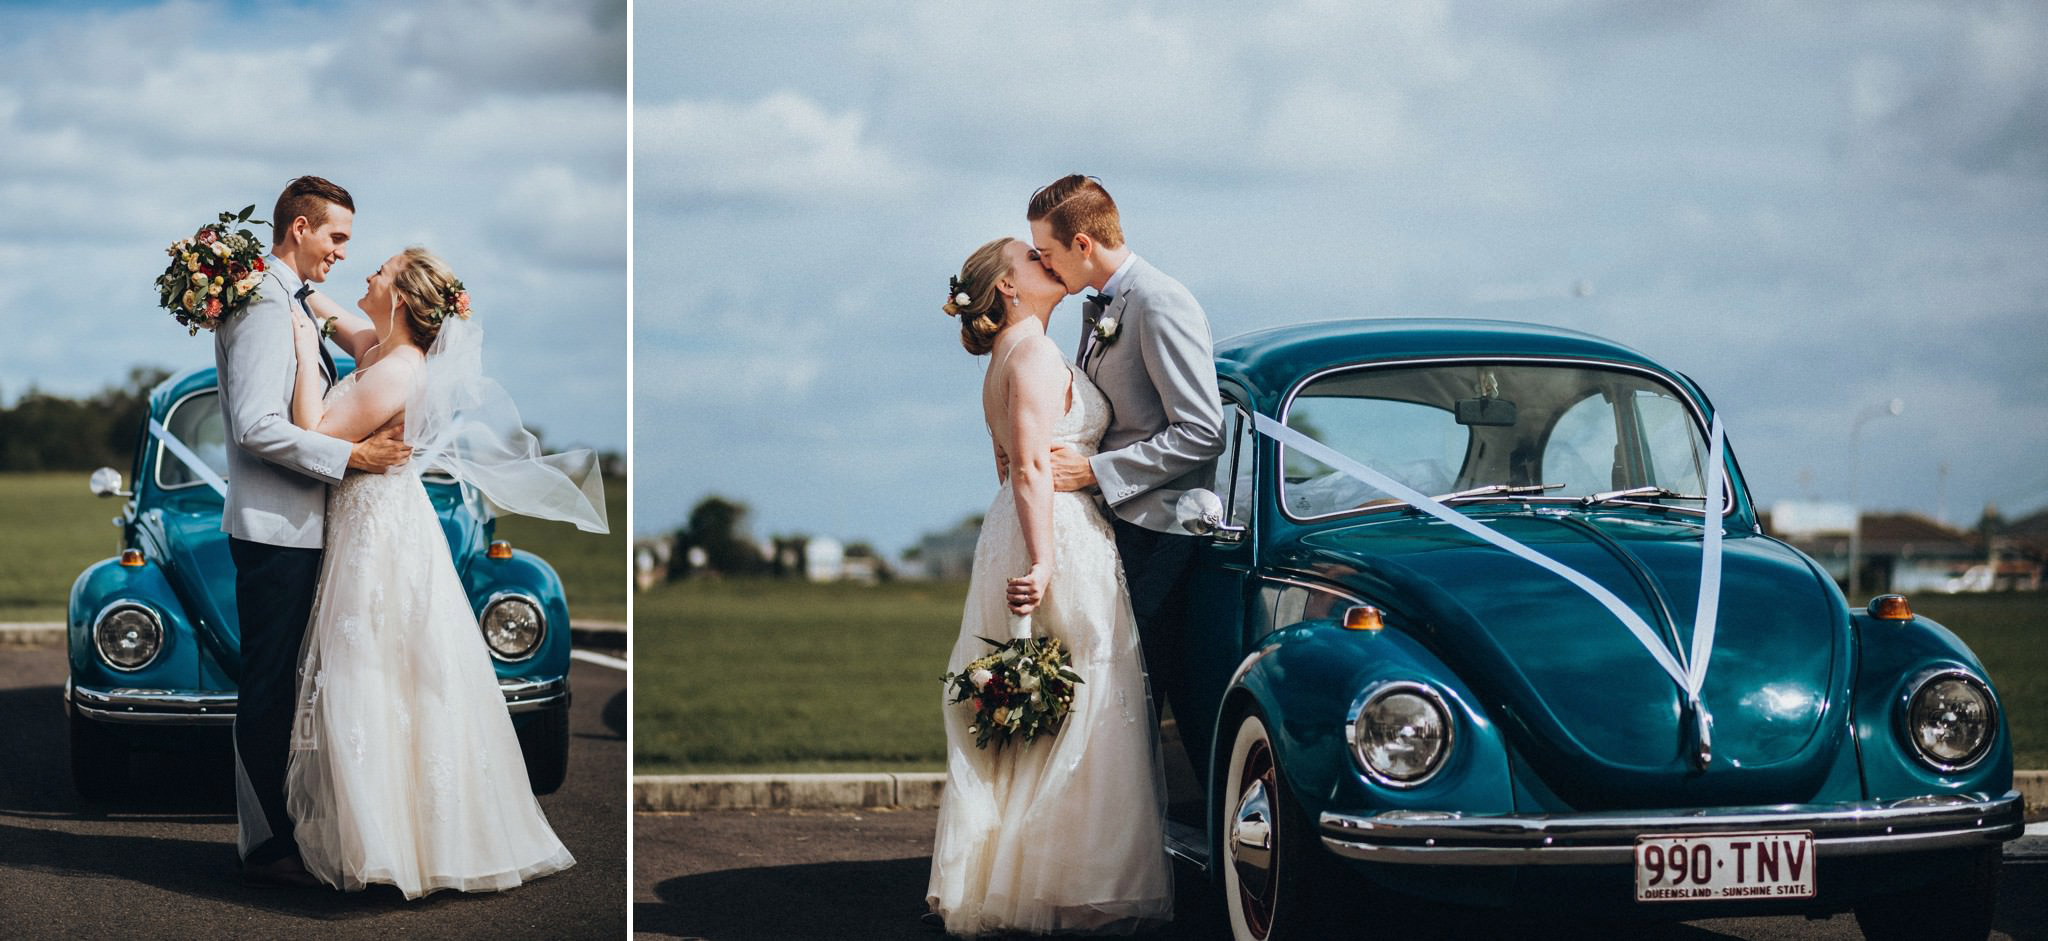 Bride and Groom with a blue car